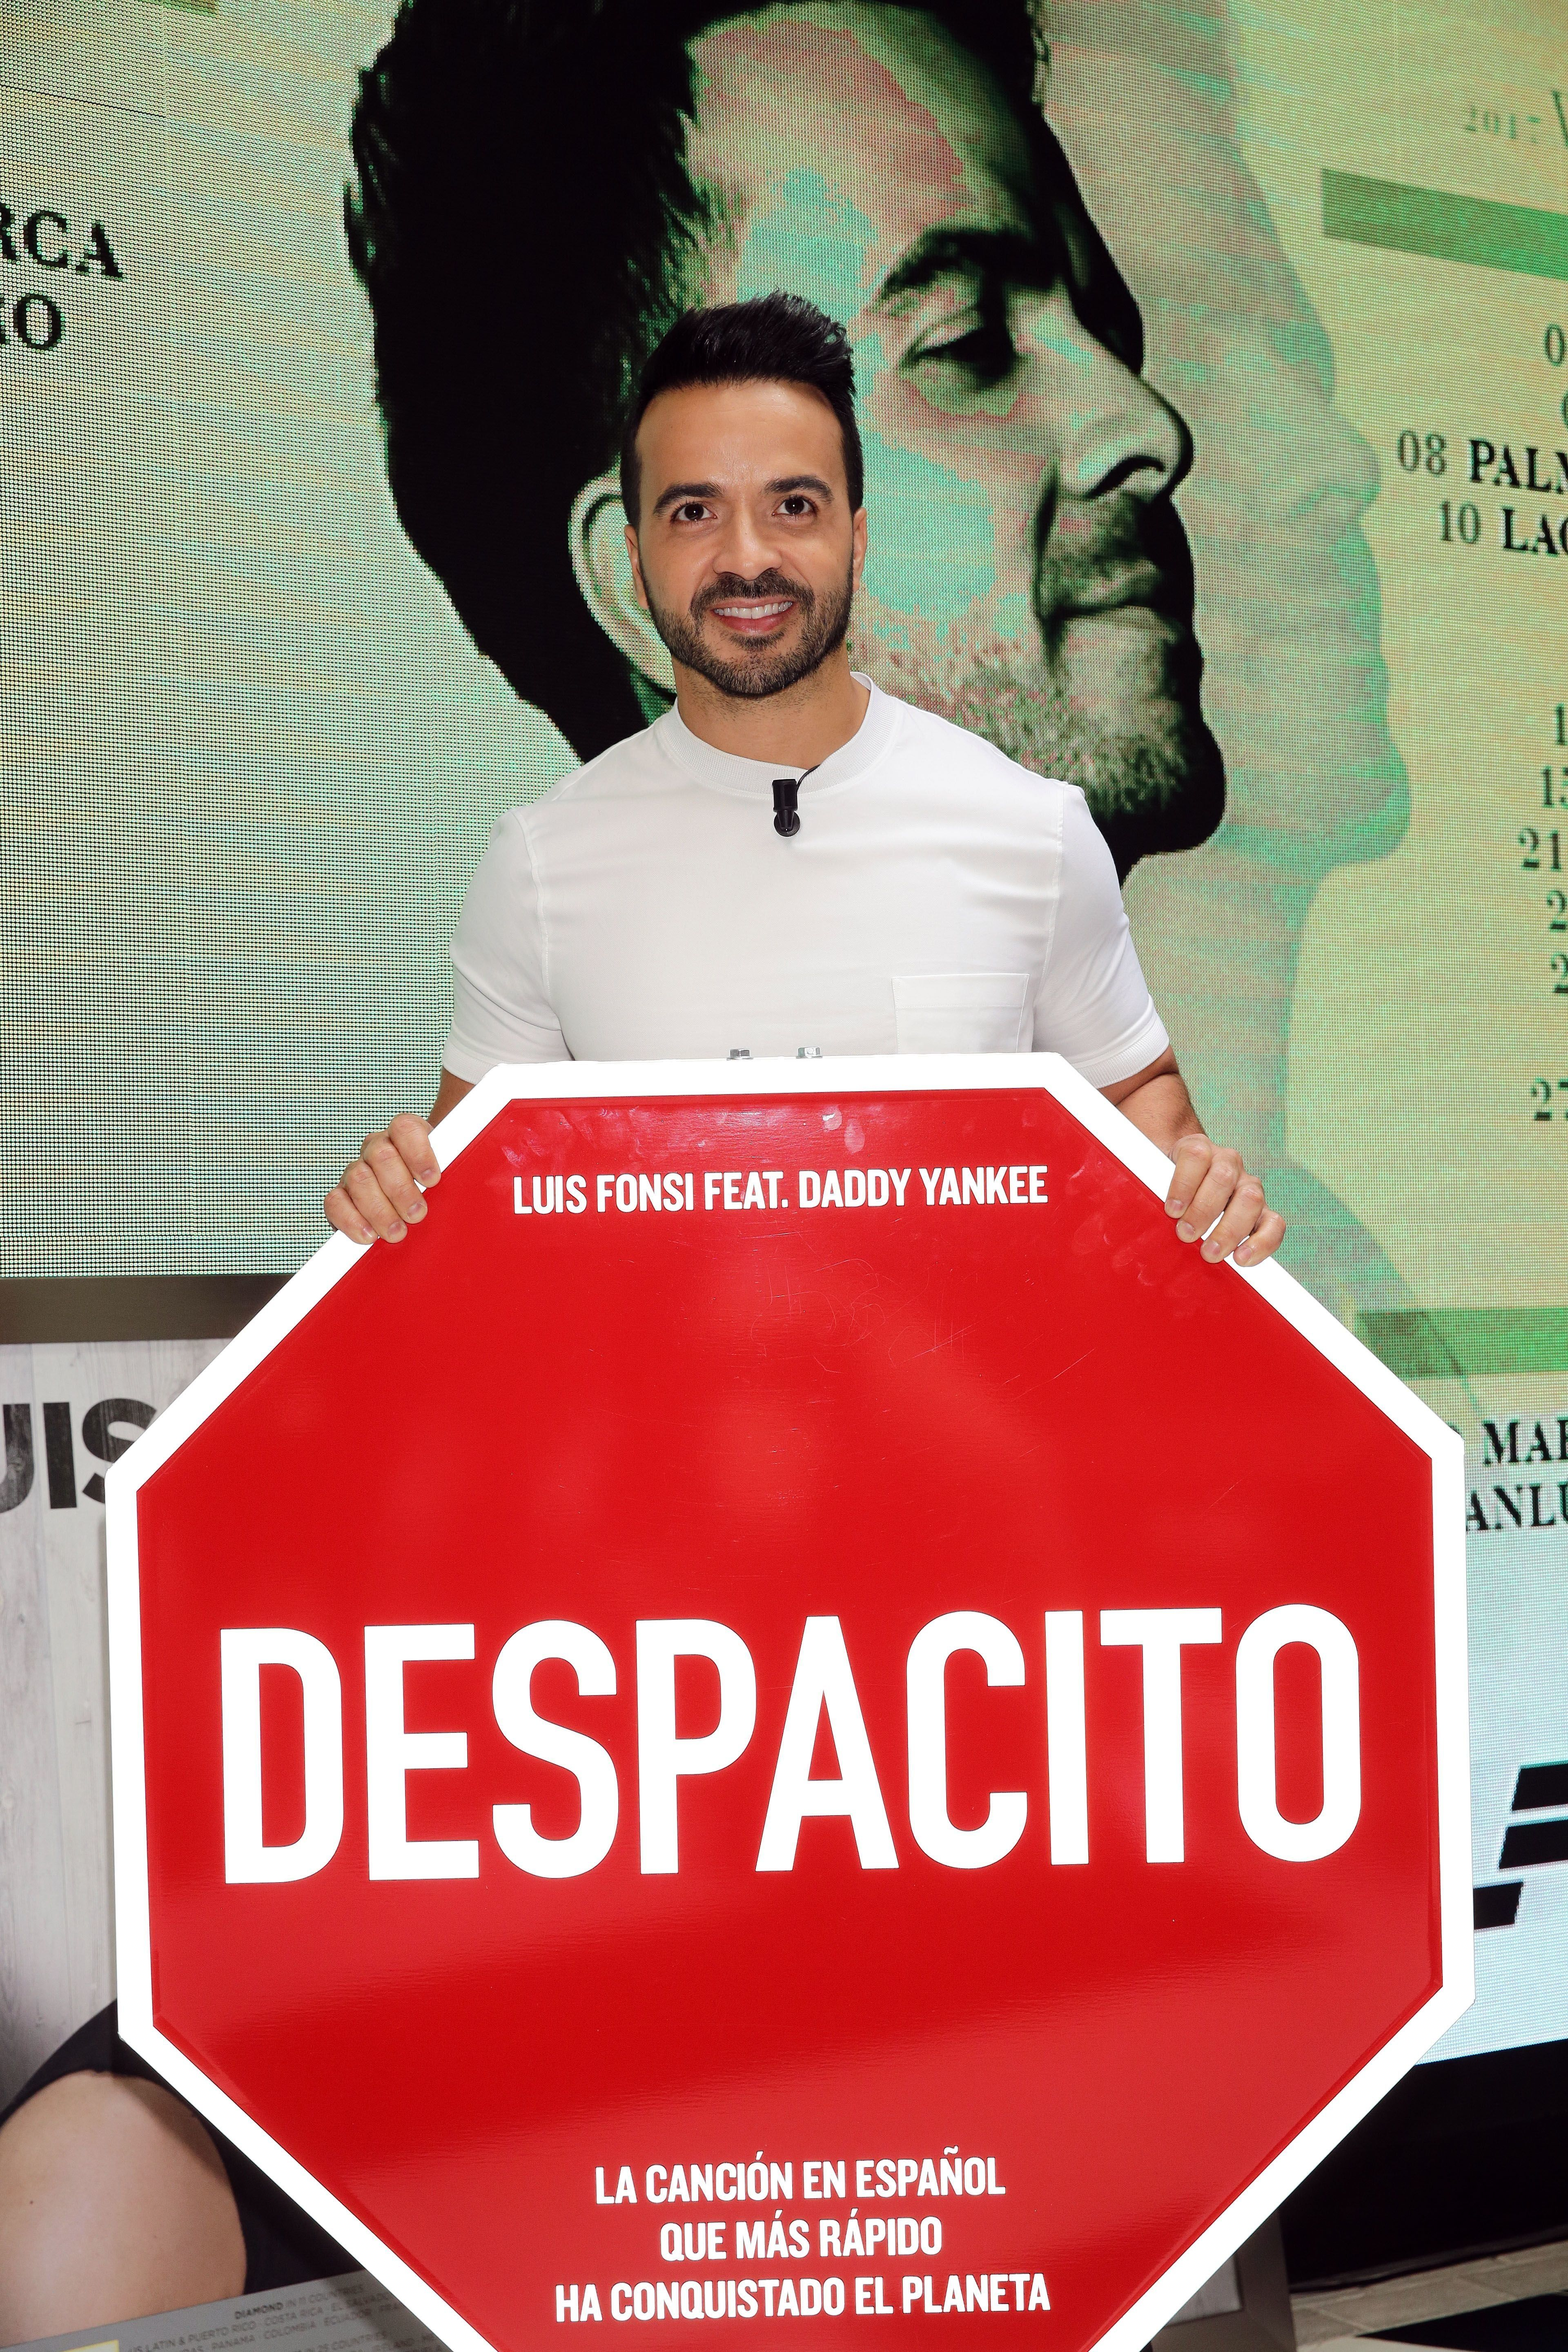 MADRID, SPAIN - JUNE 30:  Luis Fonsi presents his 'Love + Dance World Tour' and receives awards for 'Despacito' on June 30, 2017 in Madrid, Spain.  (Photo by Europa Press/Europa Press via Getty Images)